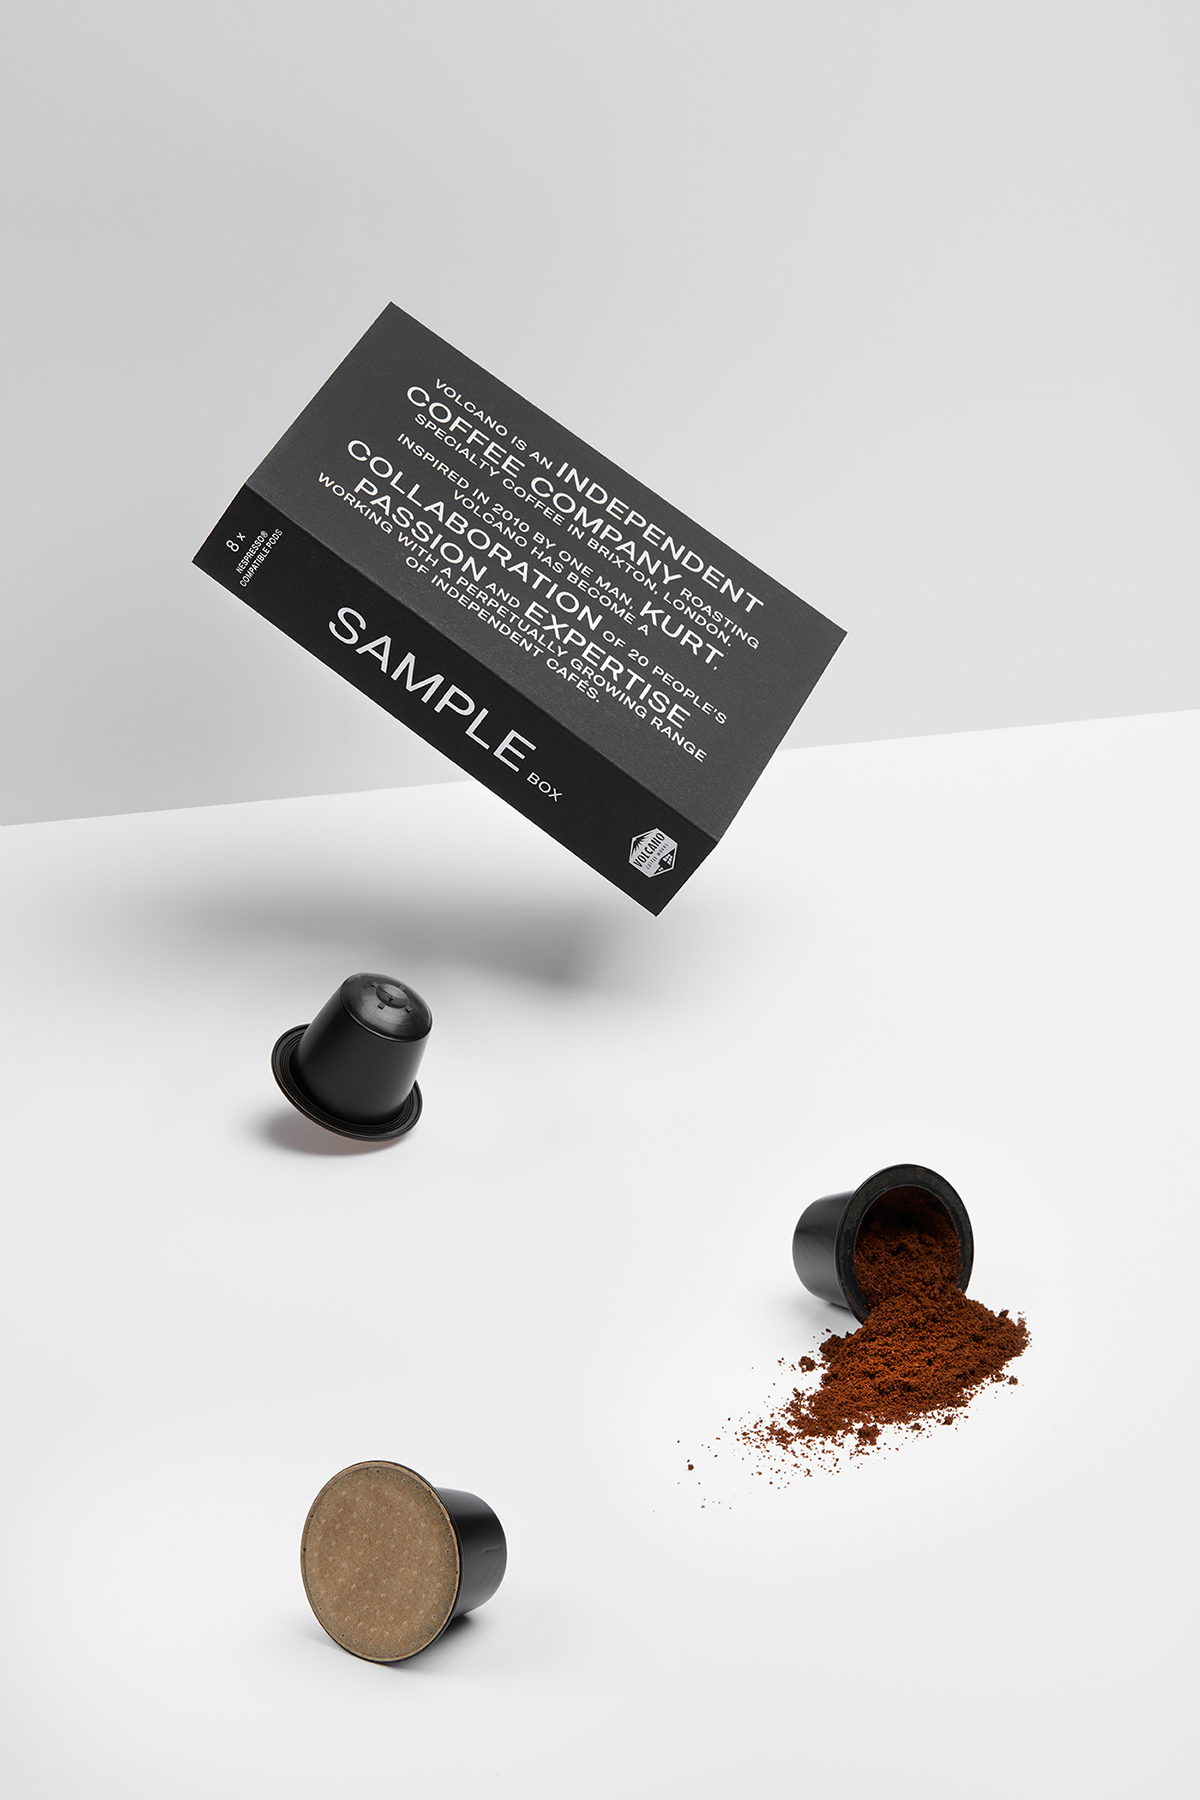 volcano-at-home-branding-packaging-coffee-goodfromyou-7.jpg